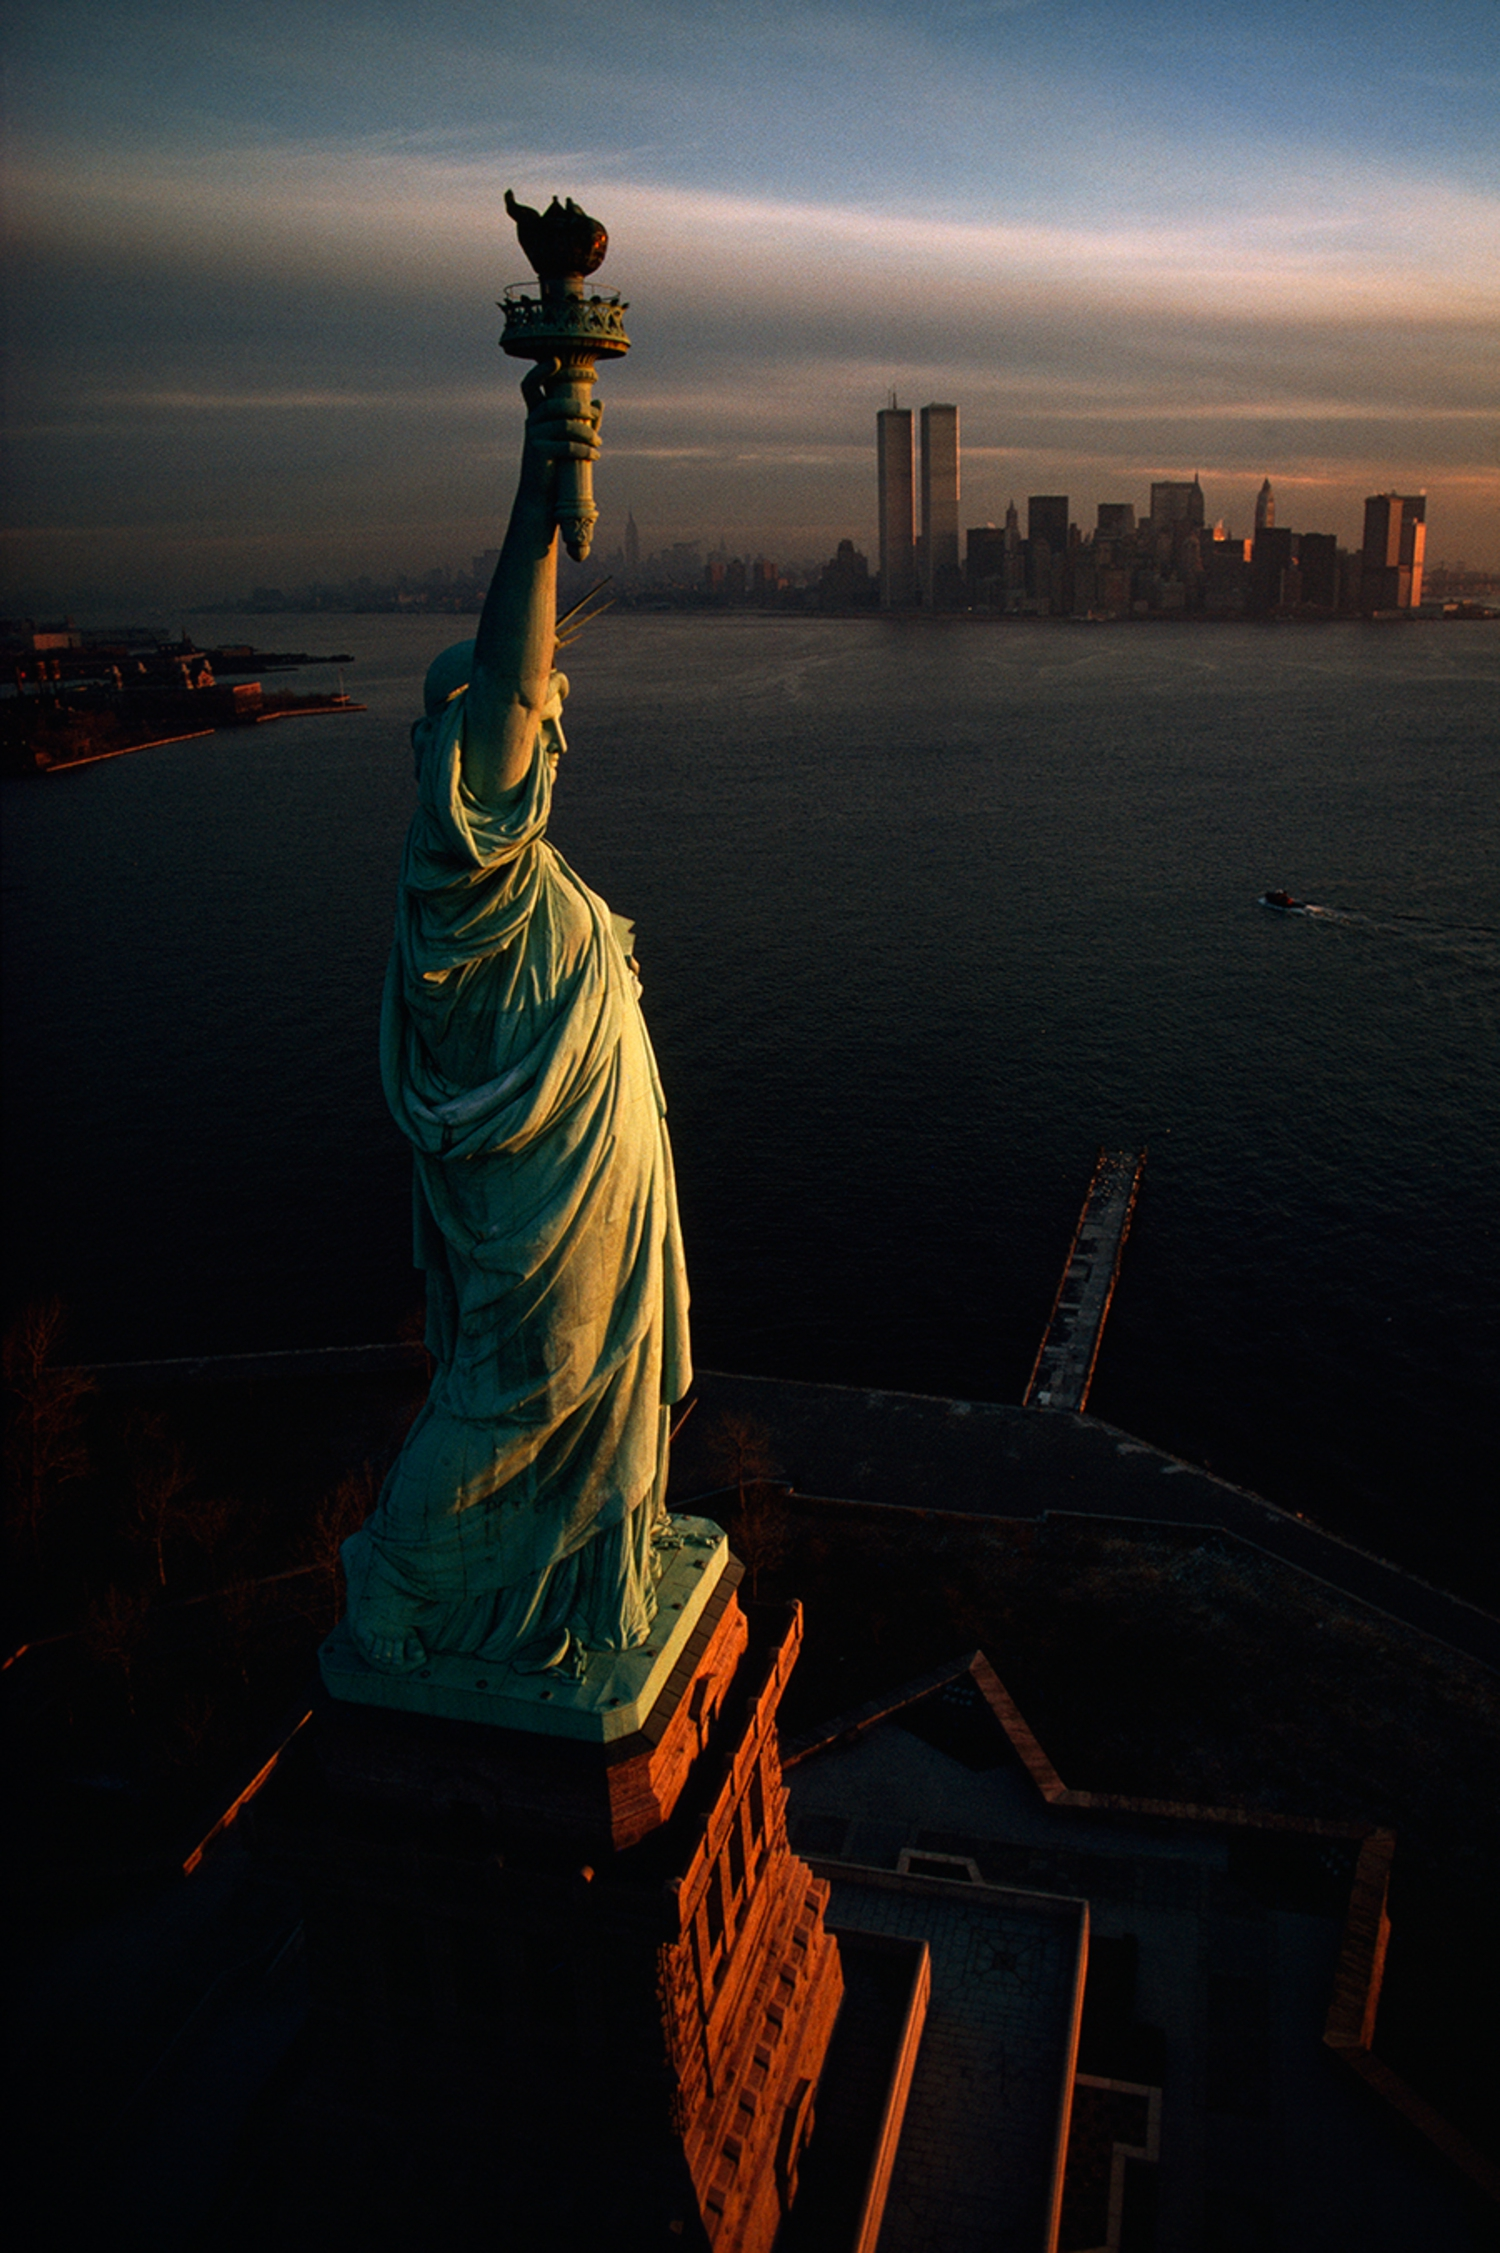 The Statue of Liberty hails dawn over New York Harbor in 1978.